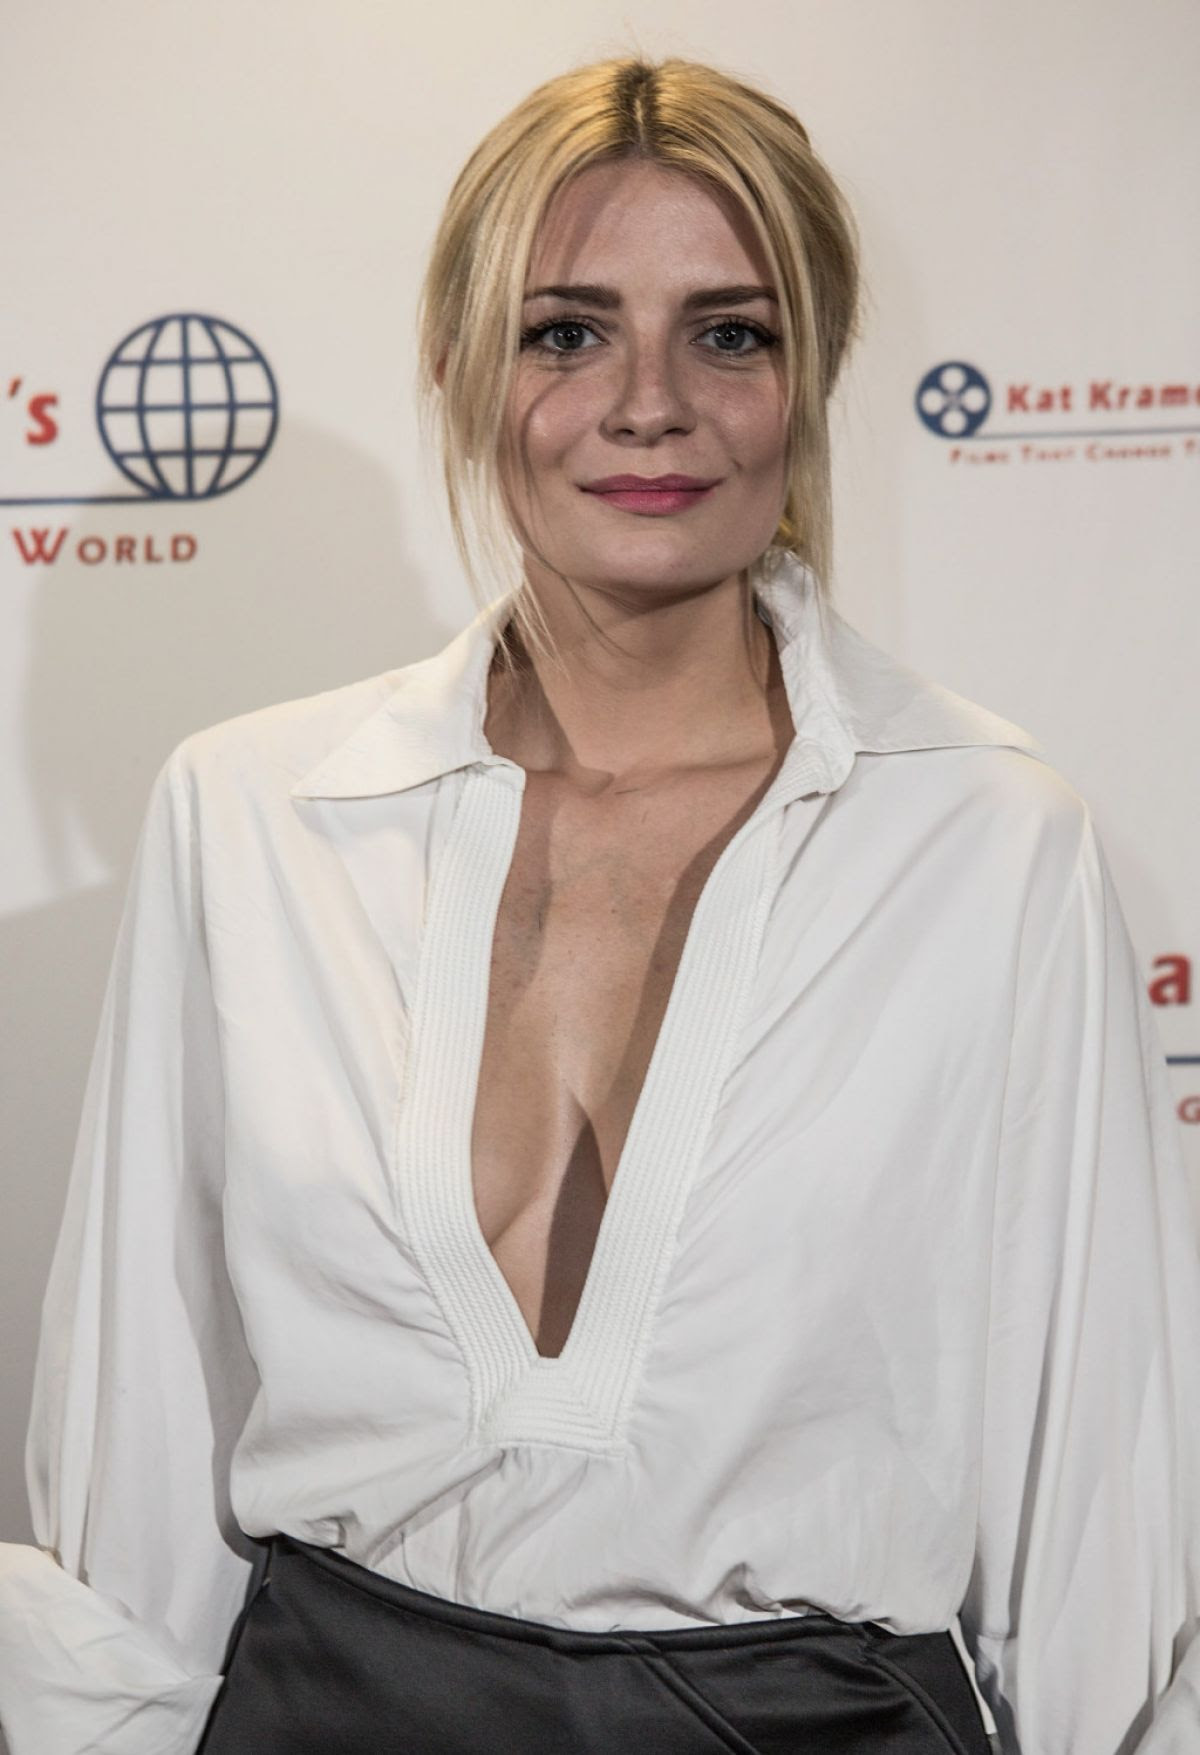 http://www.hawtcelebs.com/wp-content/uploads/2015/04/mischa-barton-at-bhopal-a-prayer-for-rain-screening-in-los-angeles_1.jpg